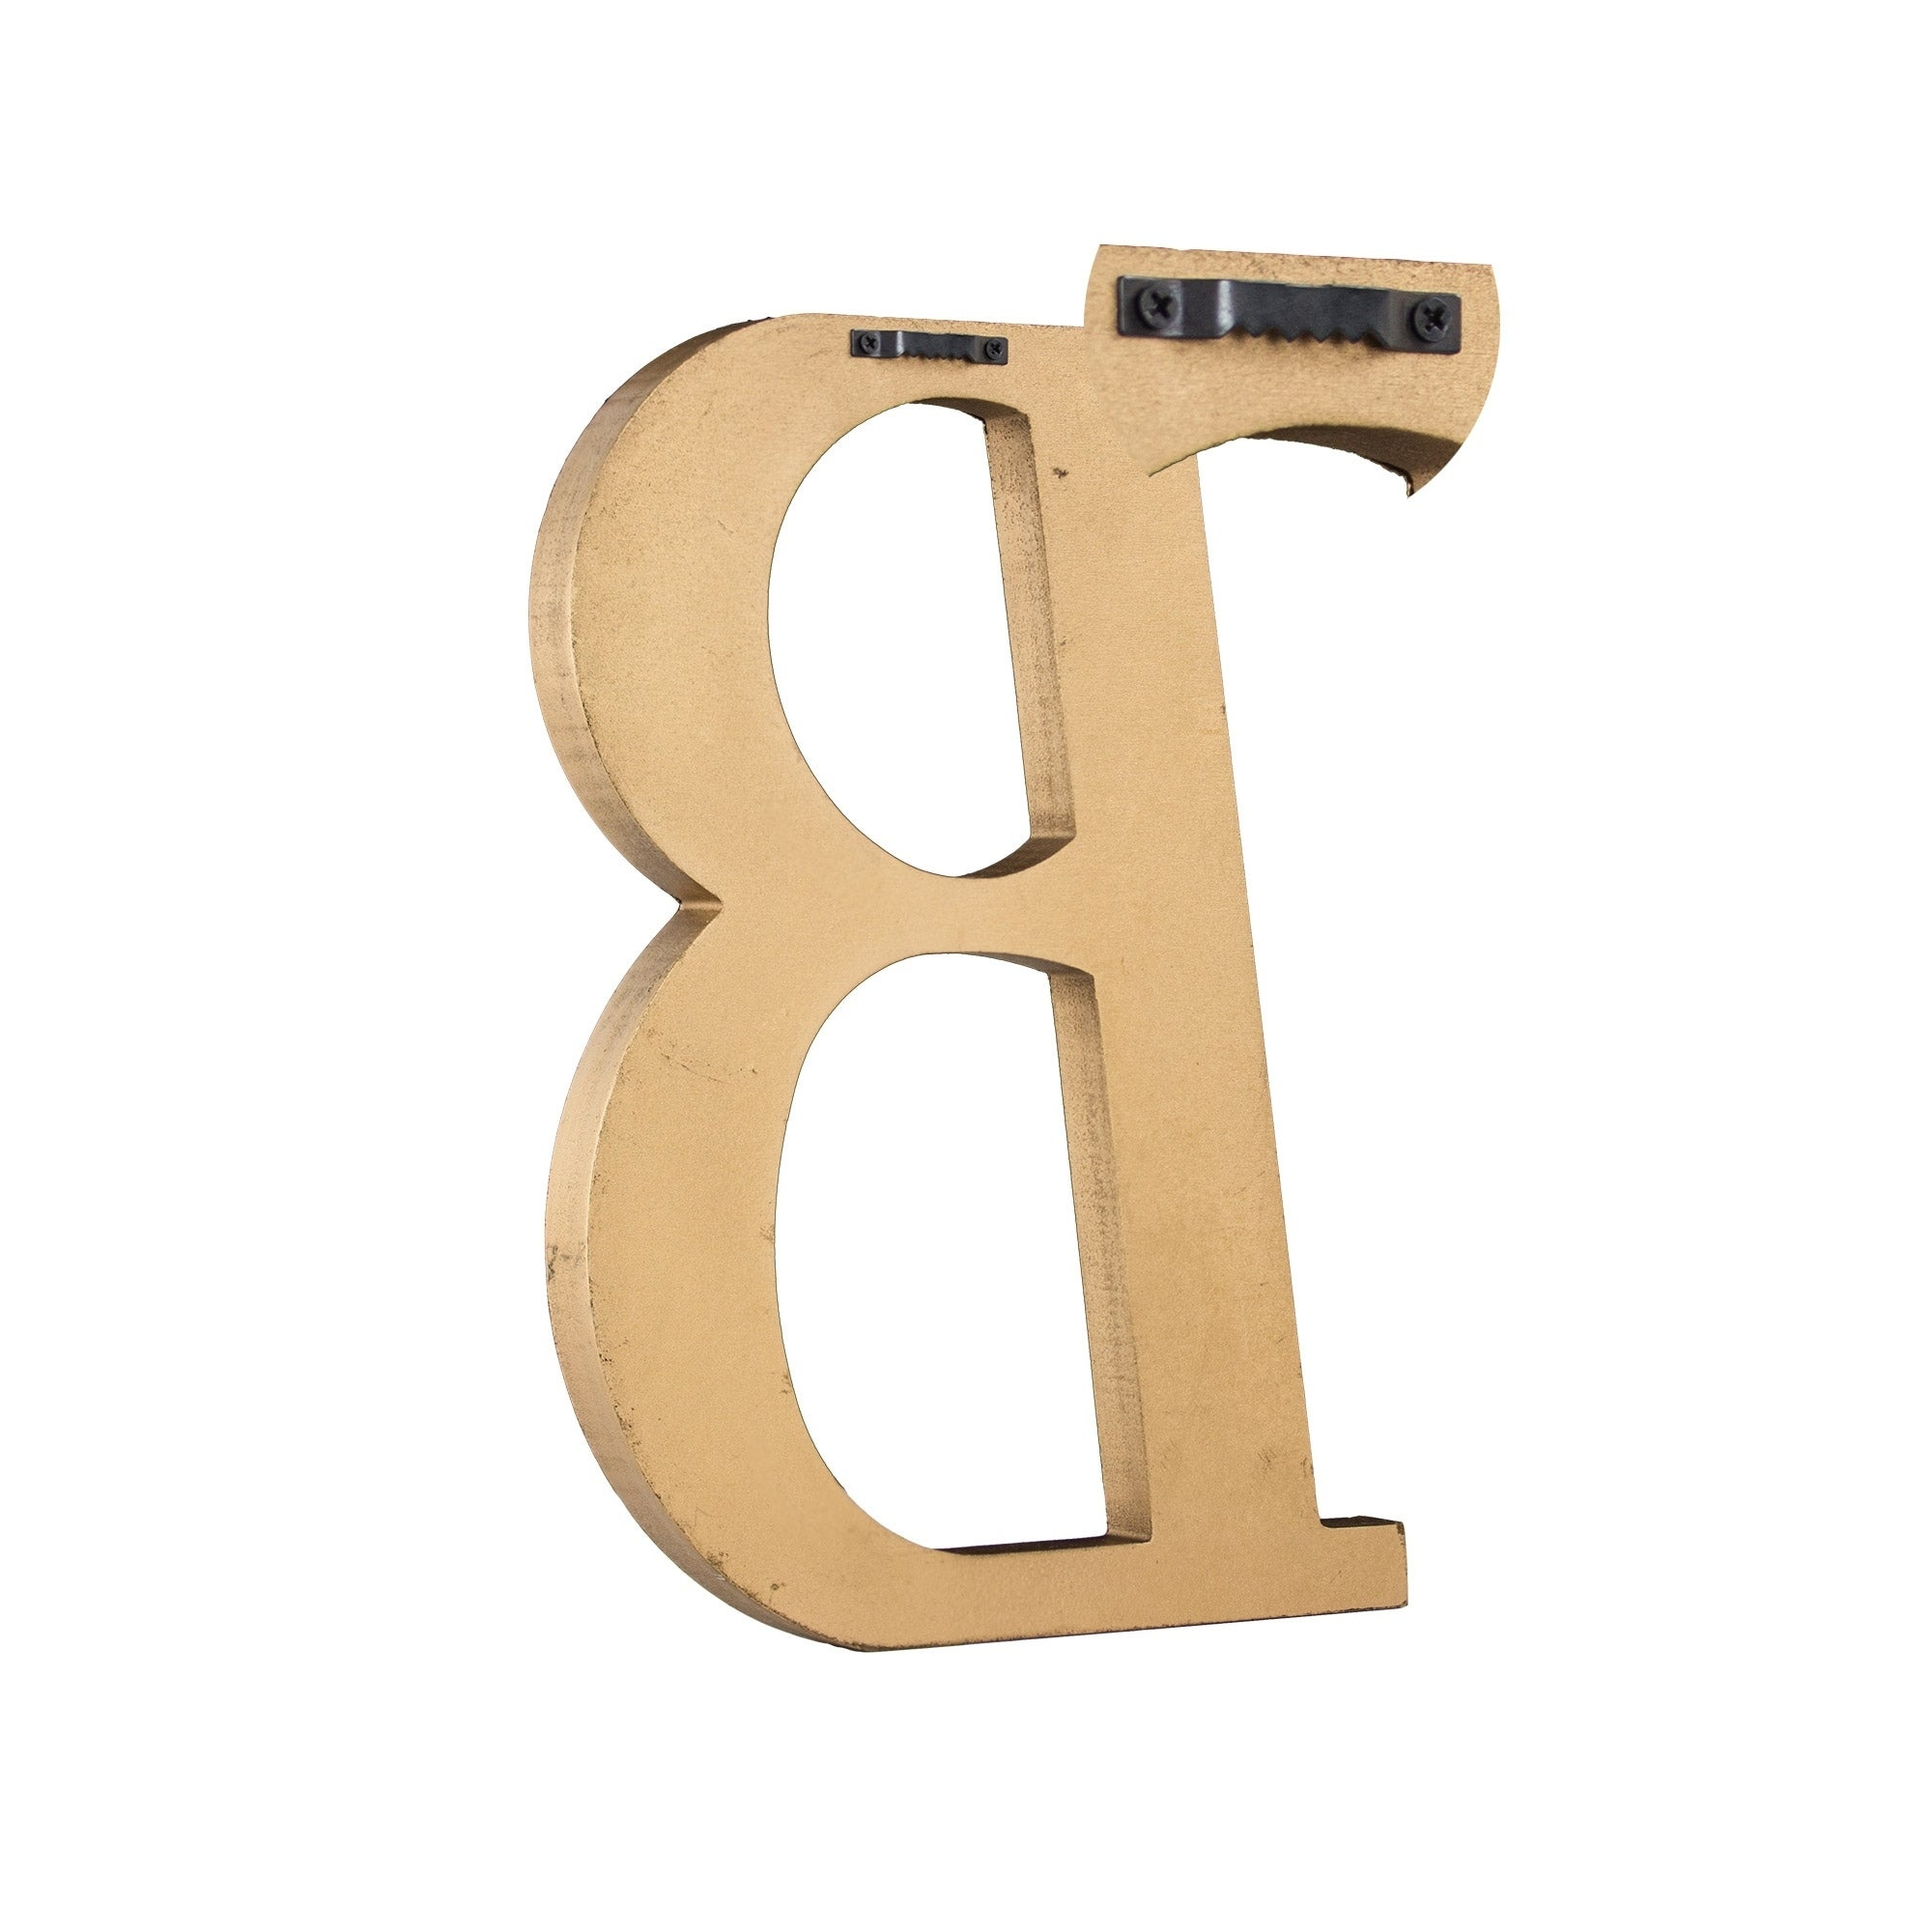 Fantastic Galvanized Metal Letter Wall Decor Pattern - All About ...